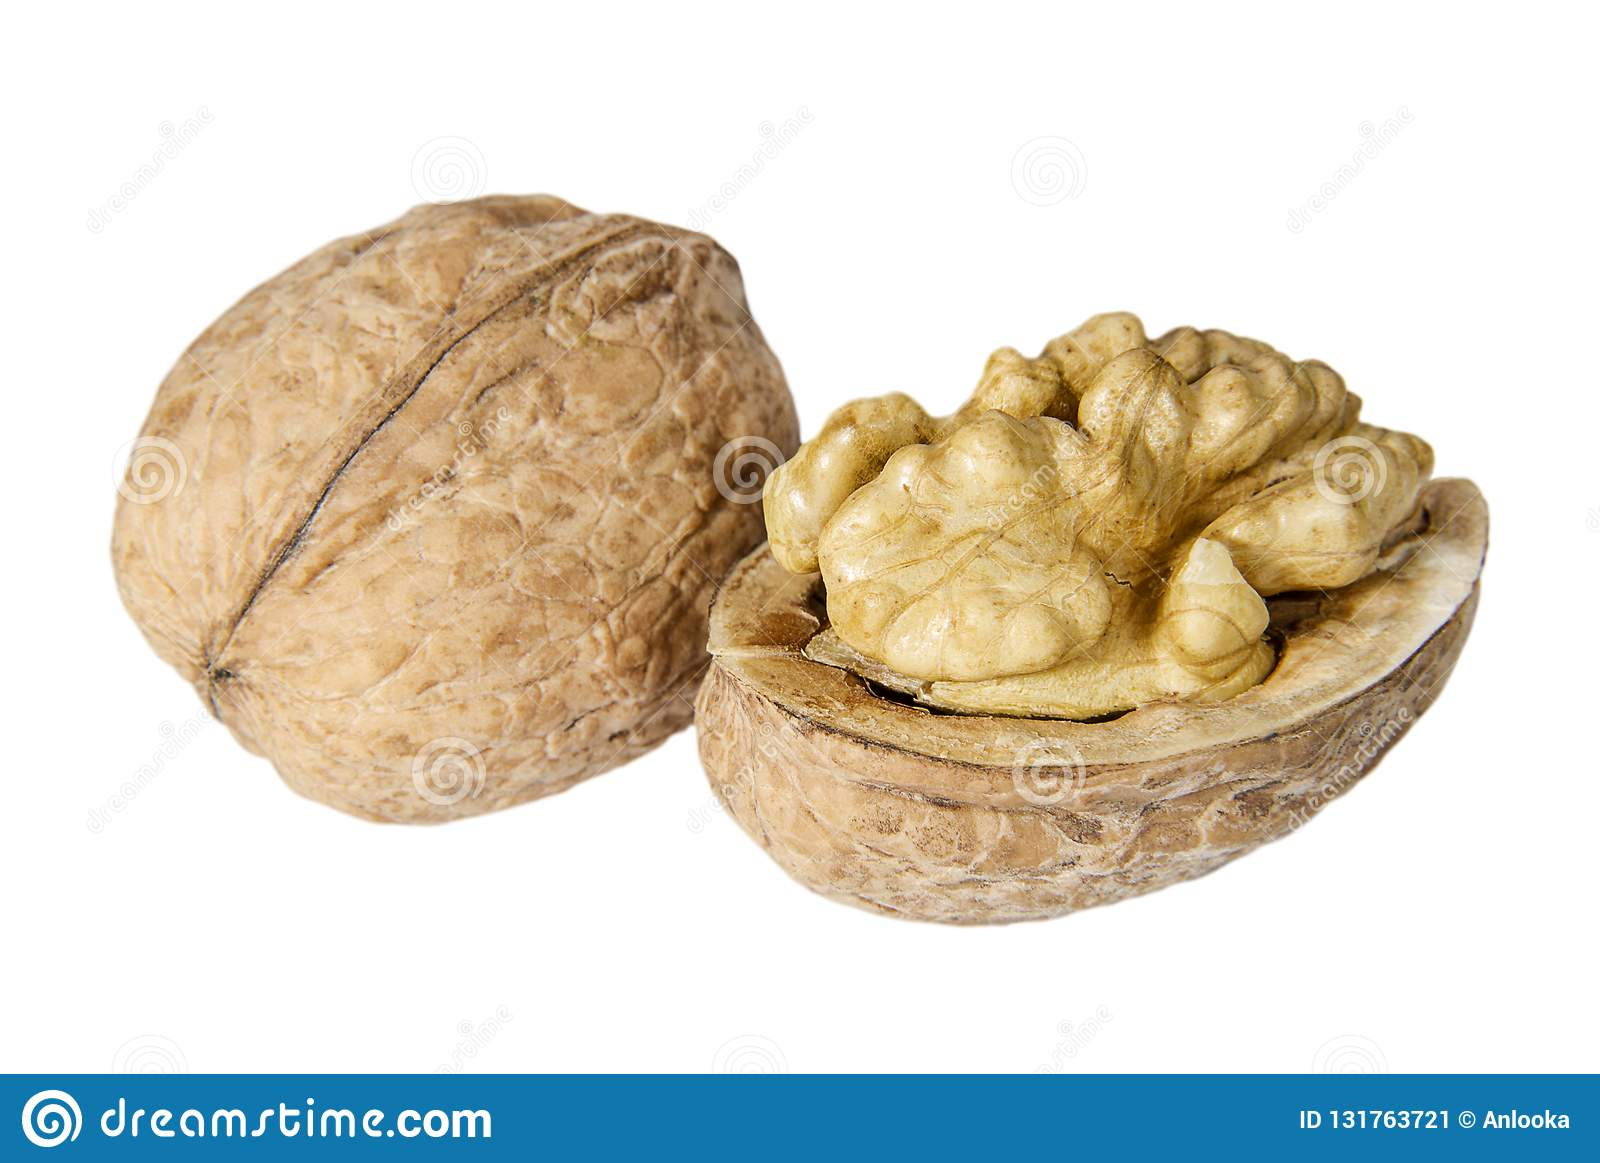 Pair of walnuts on the white background closeup